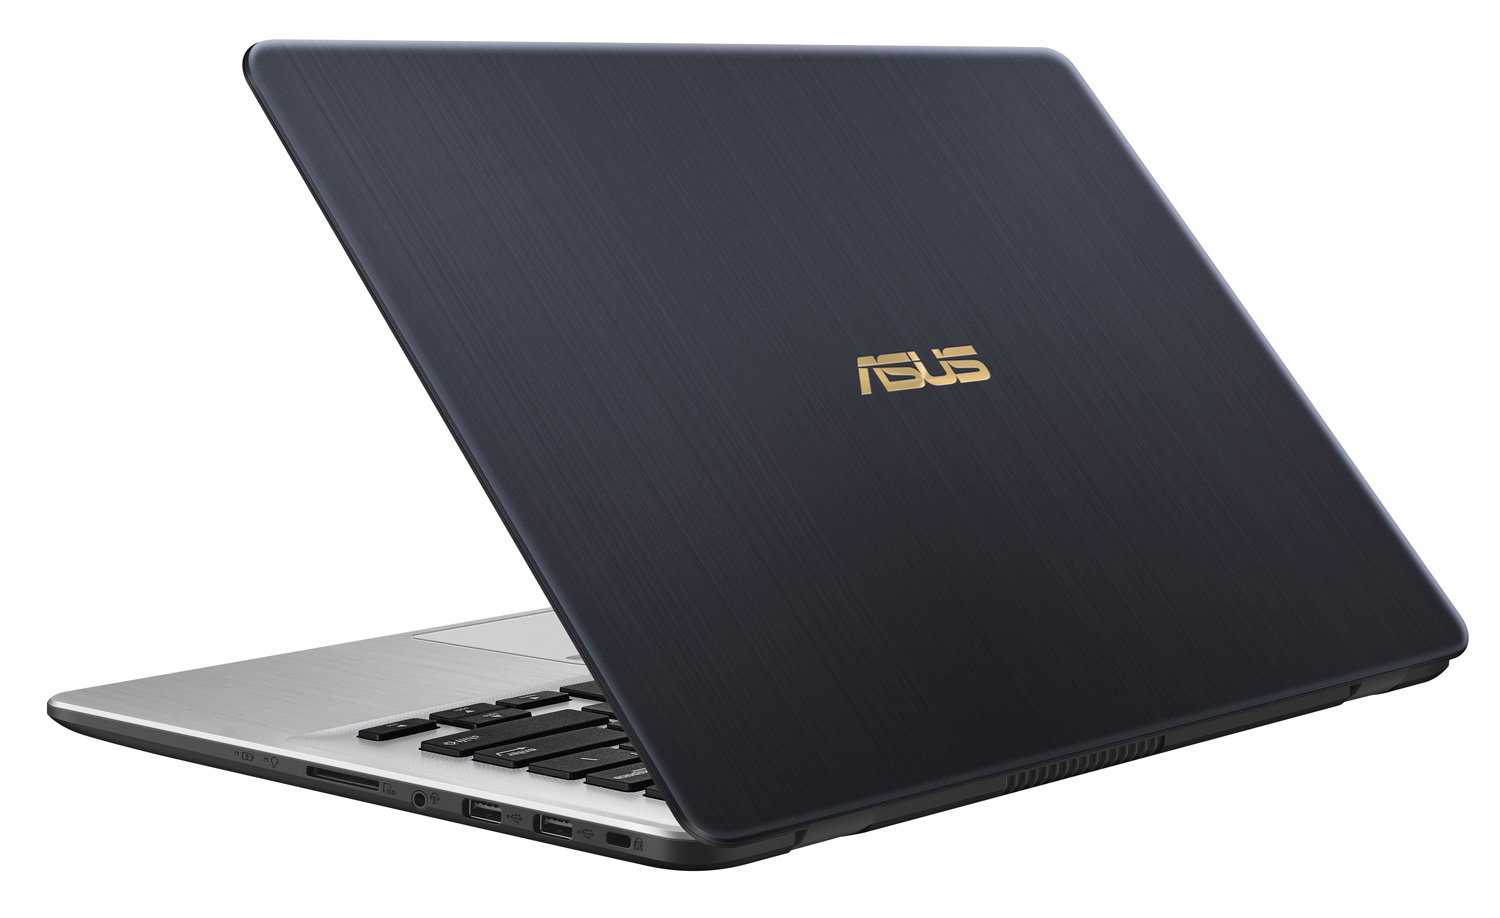 asus vivobook s405ua bv472t achetez au meilleur prix. Black Bedroom Furniture Sets. Home Design Ideas